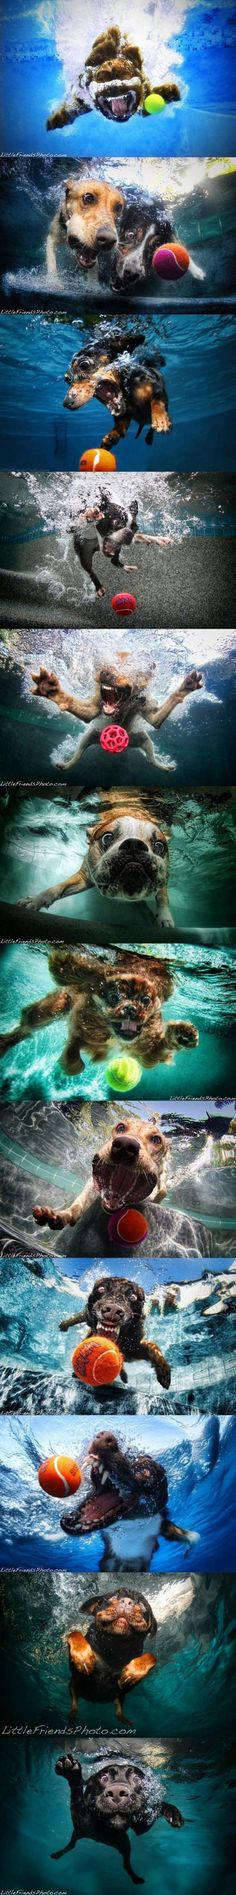 Love these underwater dog pics!